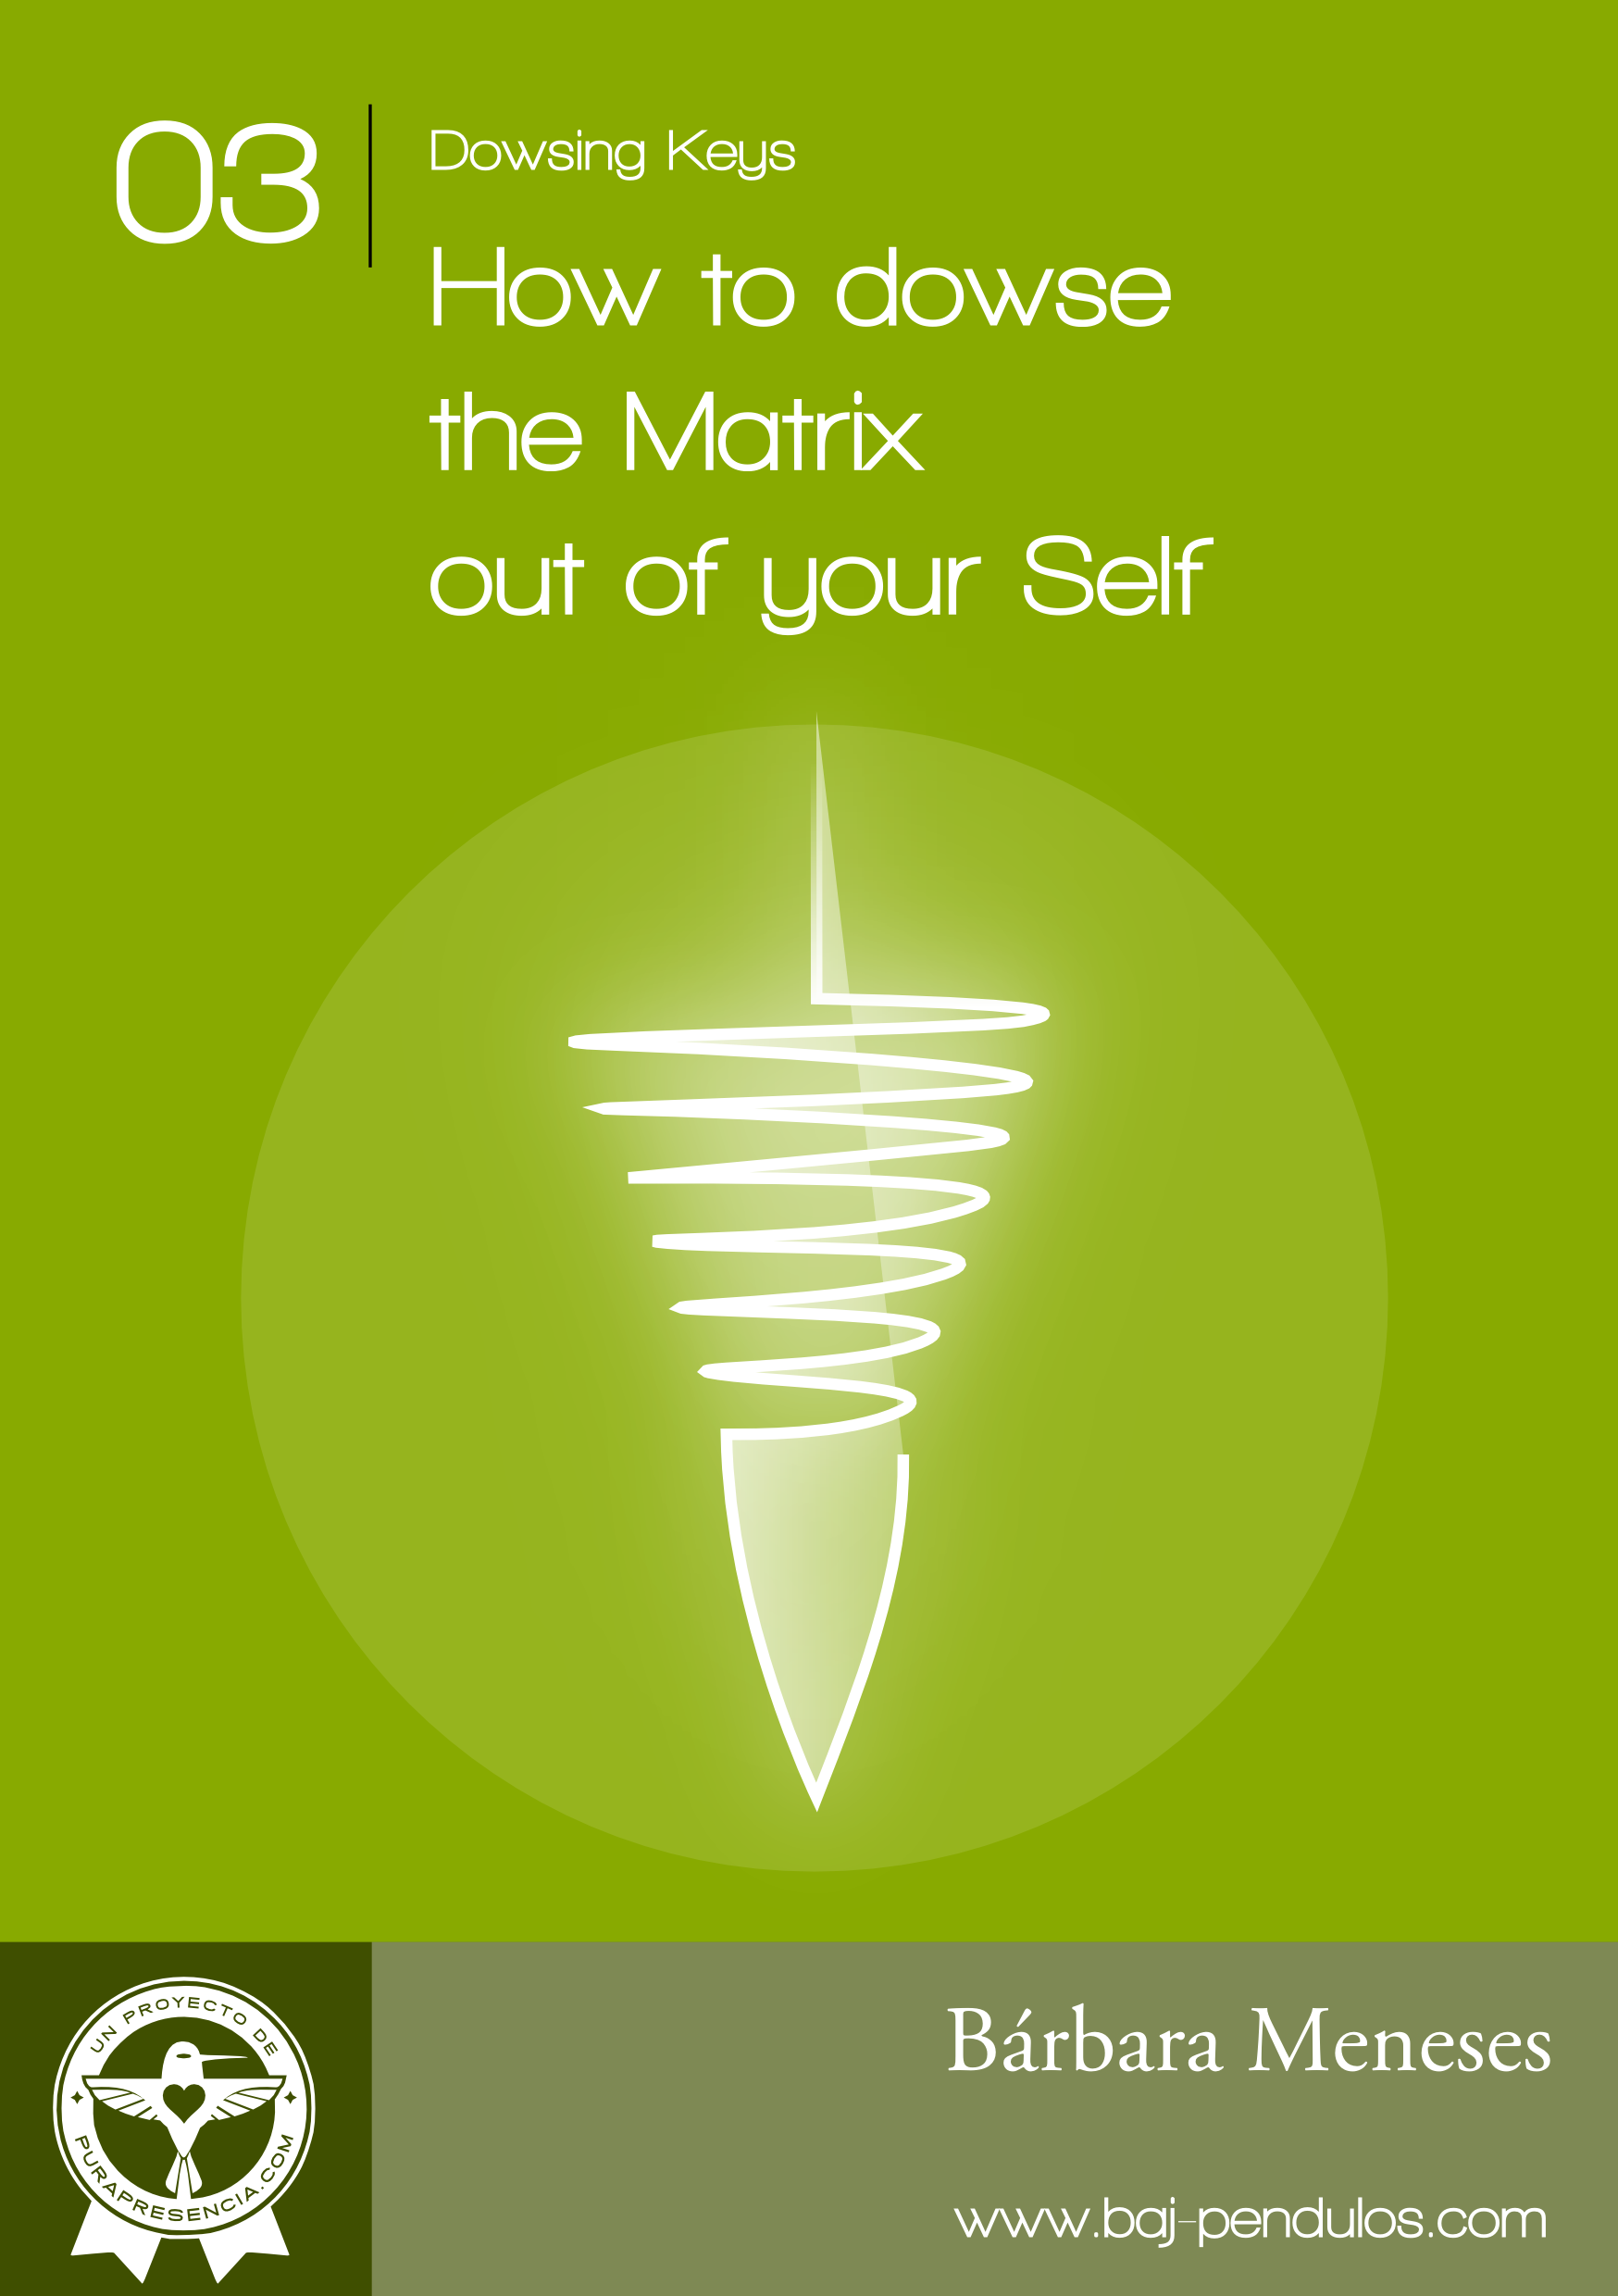 Dowsing Keys 03: How to dowse the Matrix out of your Self